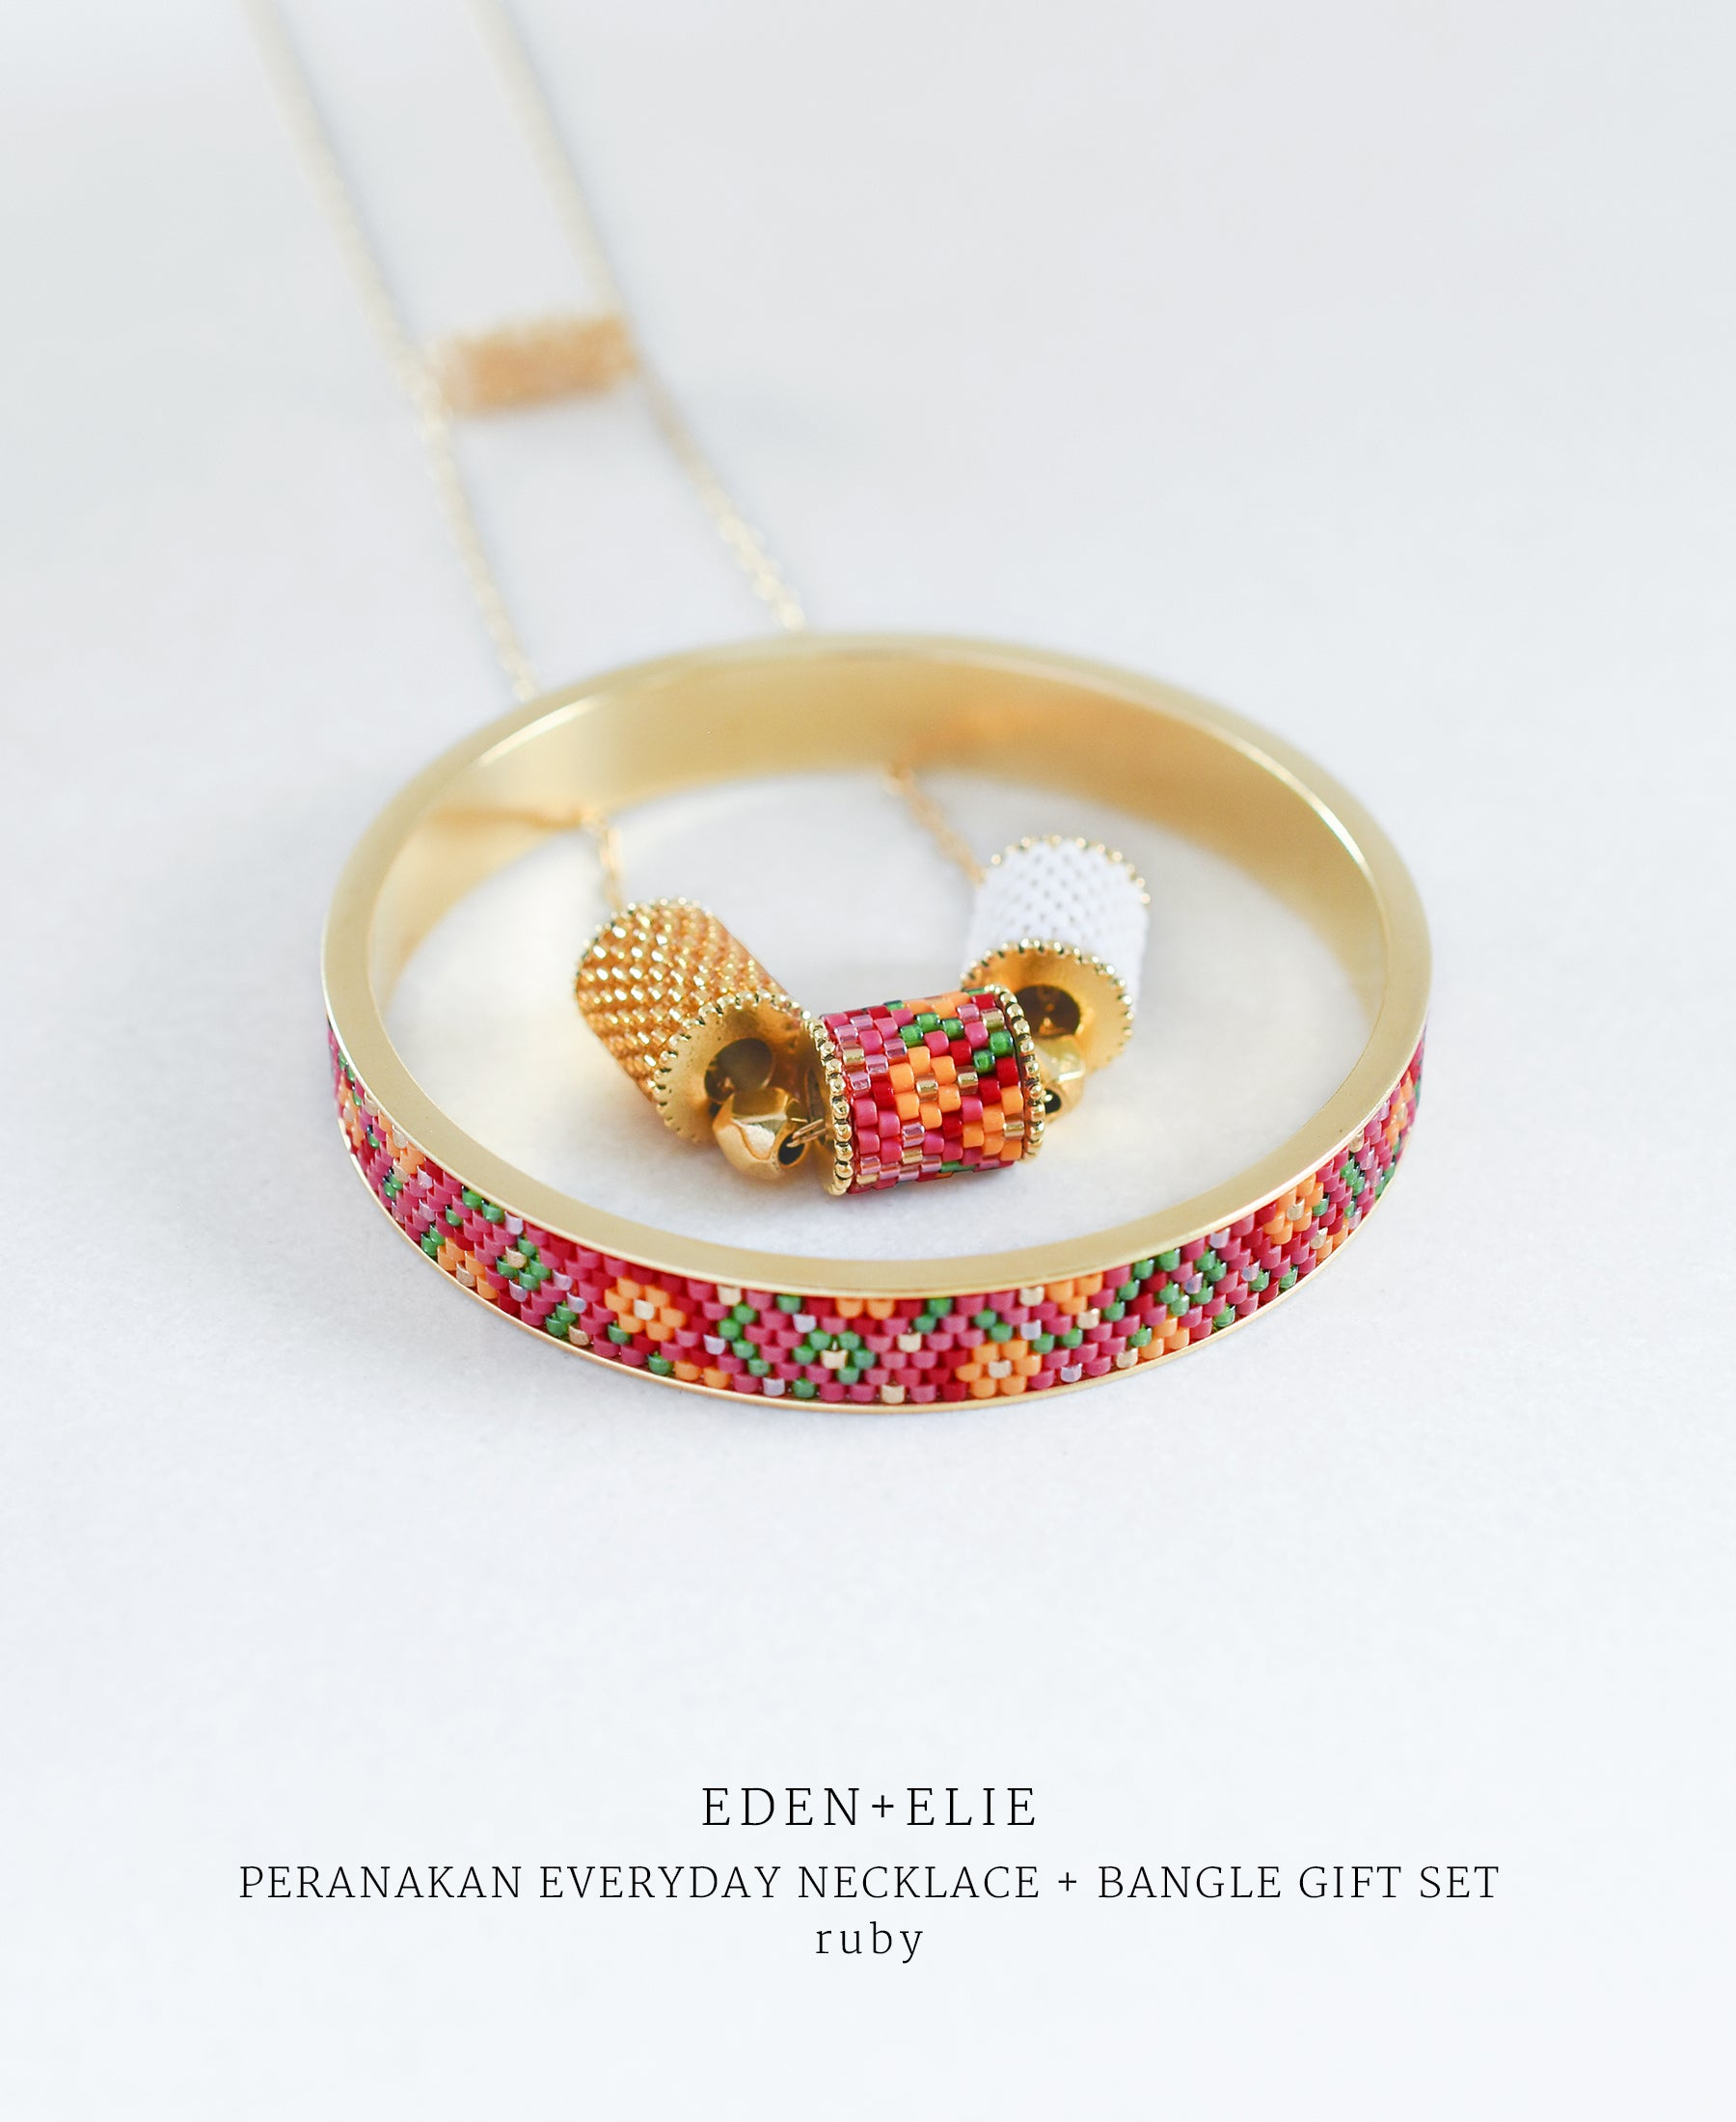 EDEN + ELIE Modern Peranakan adjustable length necklace + bangle gift set - ruby